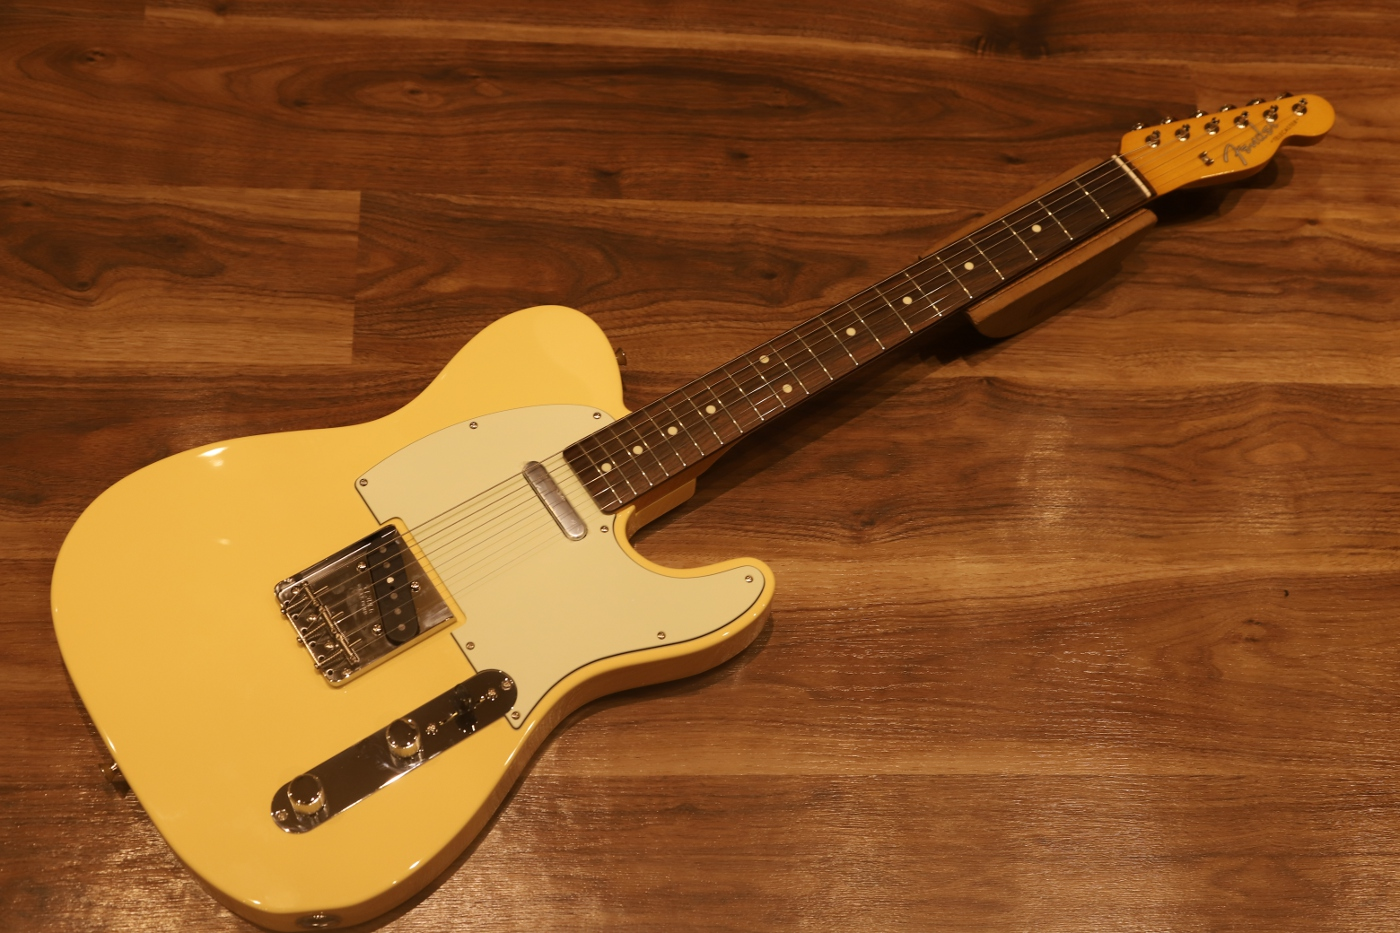 Fender MADE IN JAPAN 2018 LIMITED Traditional' 60s Telecaster®, Rosewood  Fingerboard, Vintage White fender telecaster limitation product